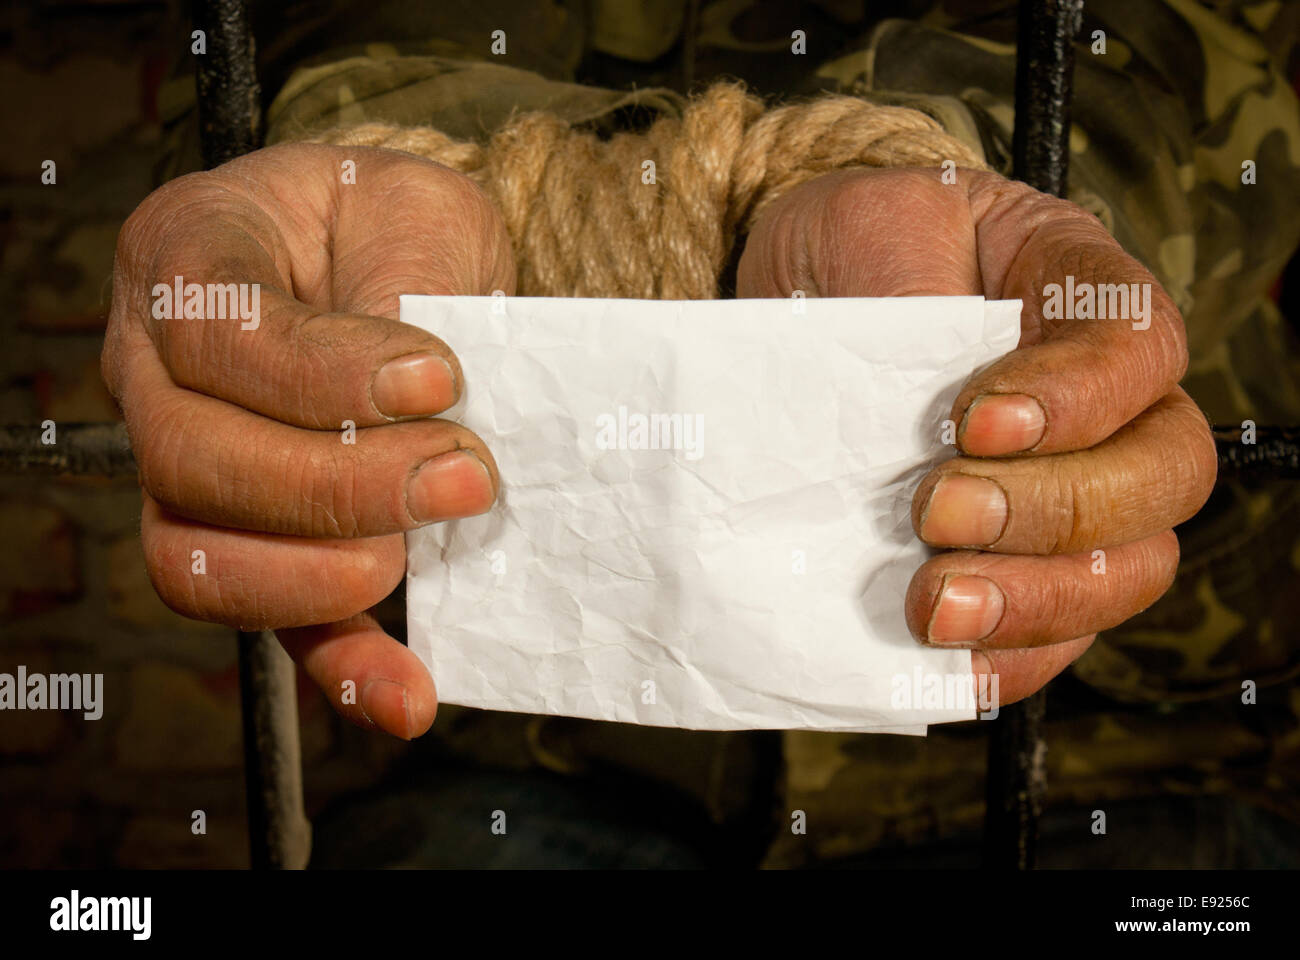 Man with hands tied up with rope - Stock Image